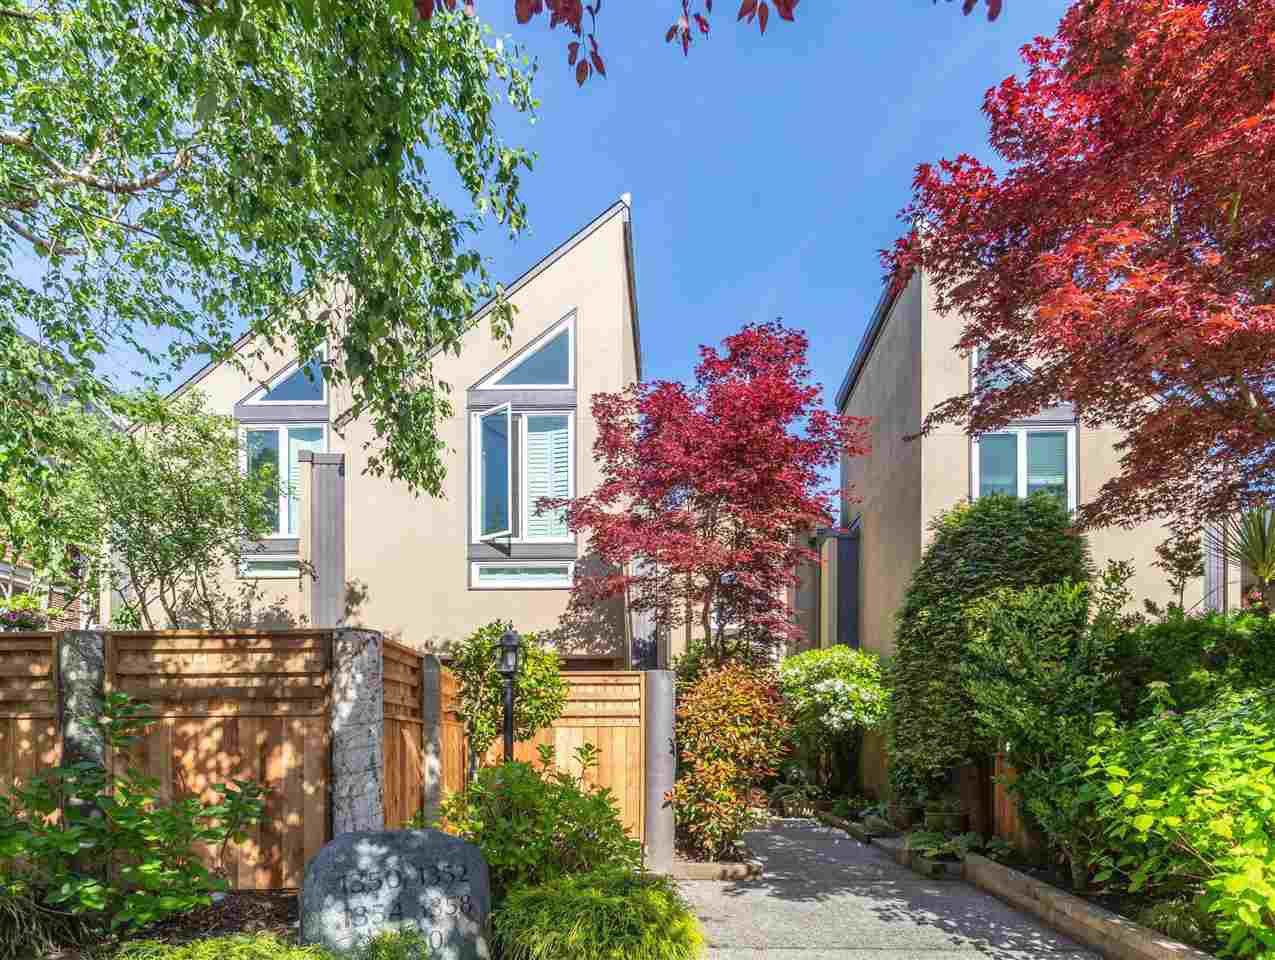 Main Photo: 1358 CYPRESS STREET in Vancouver: Kitsilano Townhouse for sale (Vancouver West)  : MLS®# R2459445